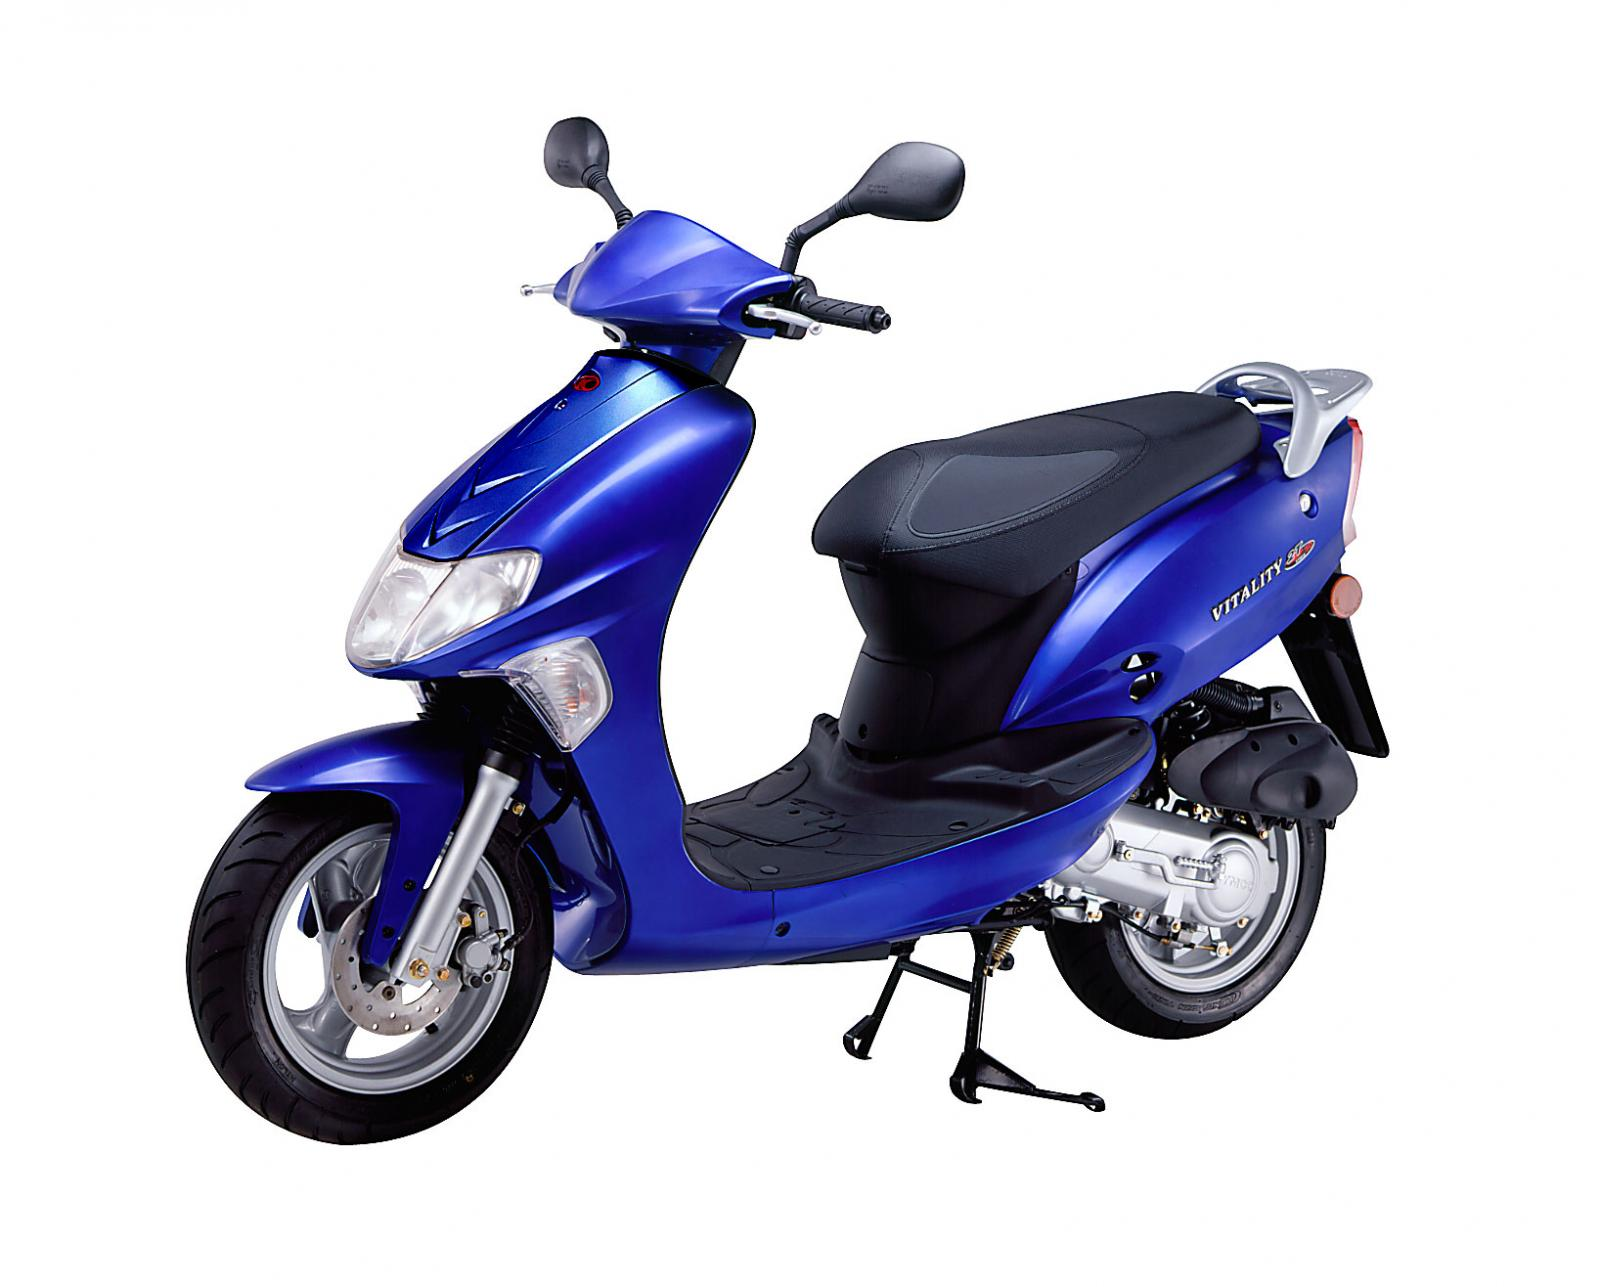 Kymco Filly LX 50 images #101670